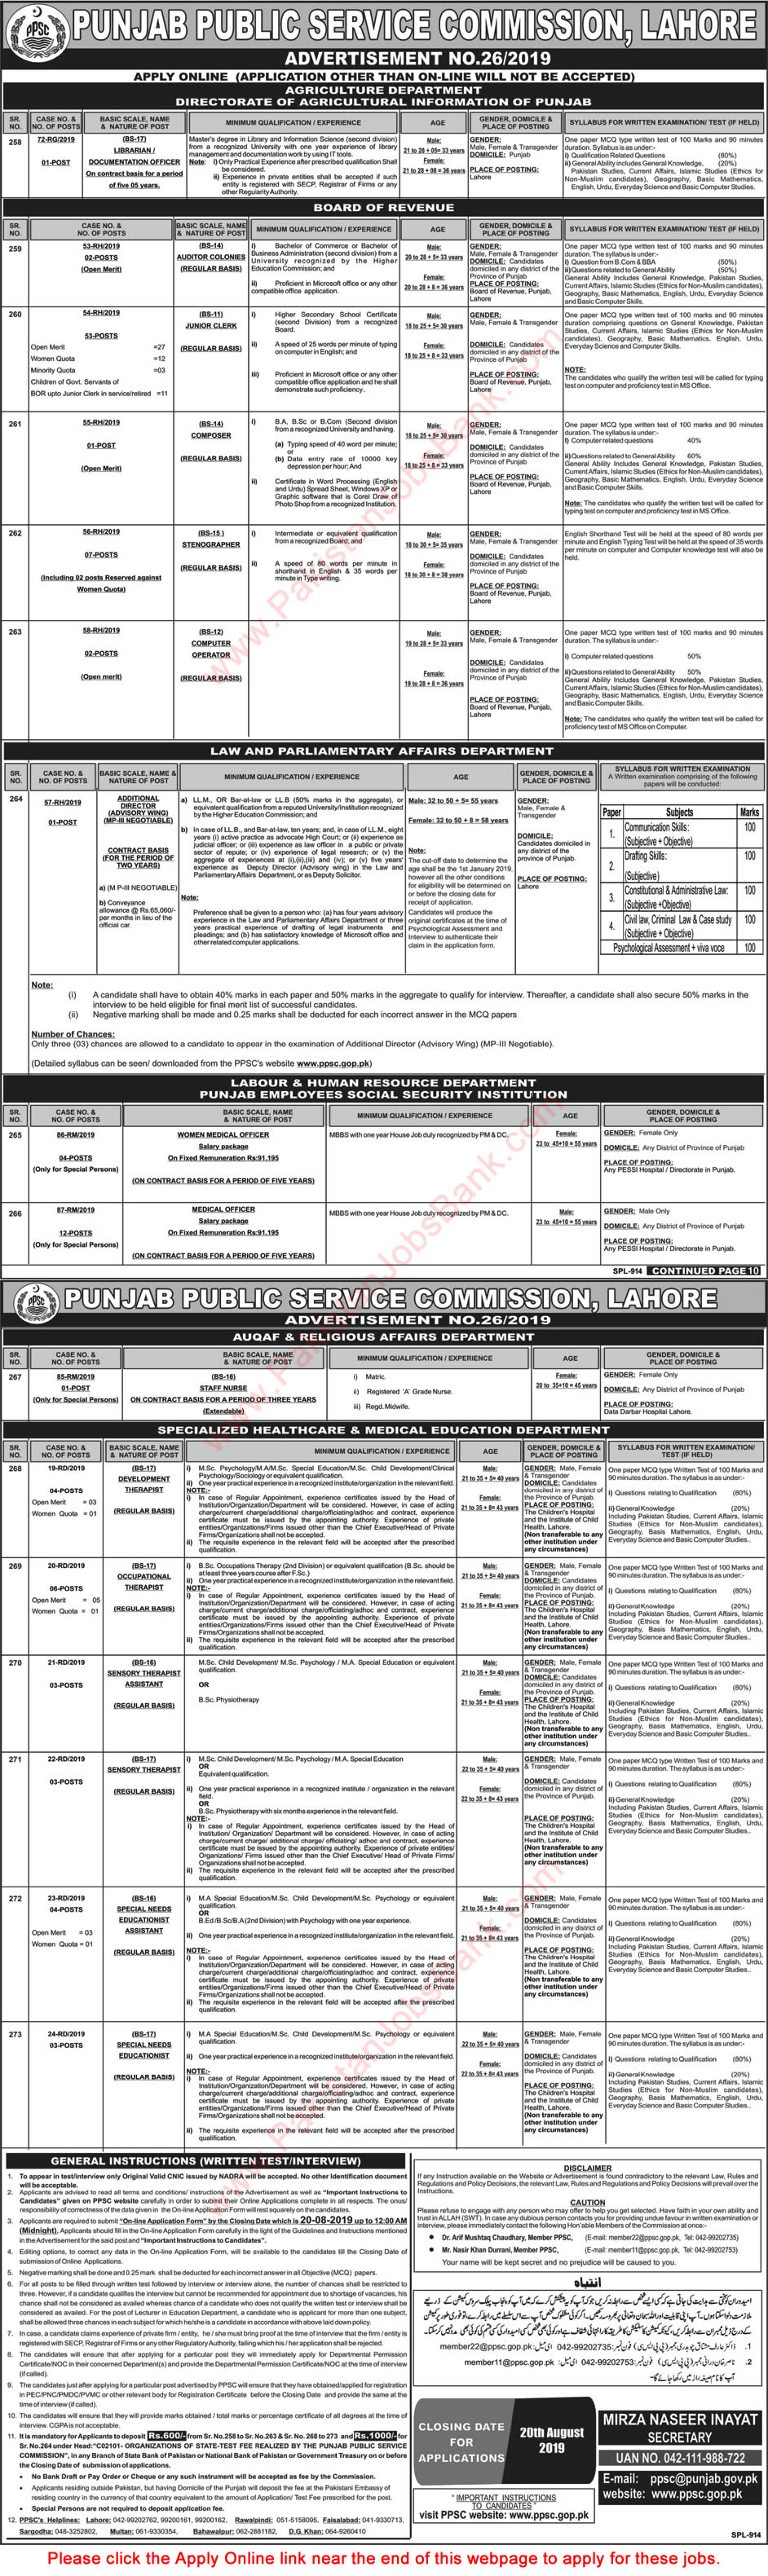 PPSC Jobs August 2019 Apply Online Consolidated Advertisement No 26/2019 Latest